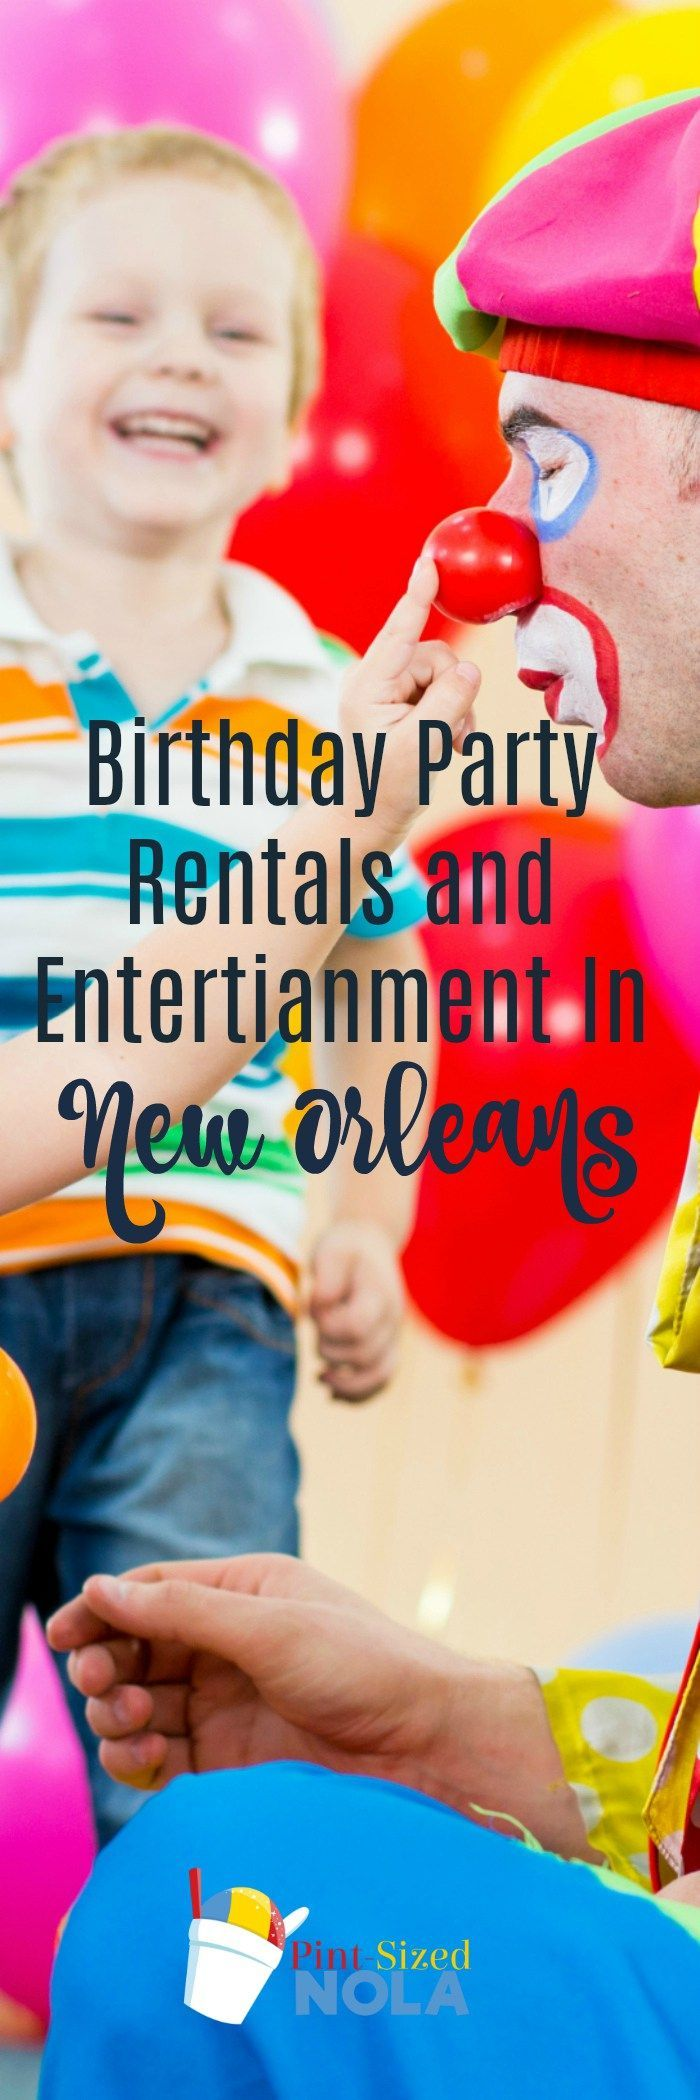 Best Birthday Party Rentals Ideas On Pinterest Kids Party - Childrens birthday parties orleans ontario